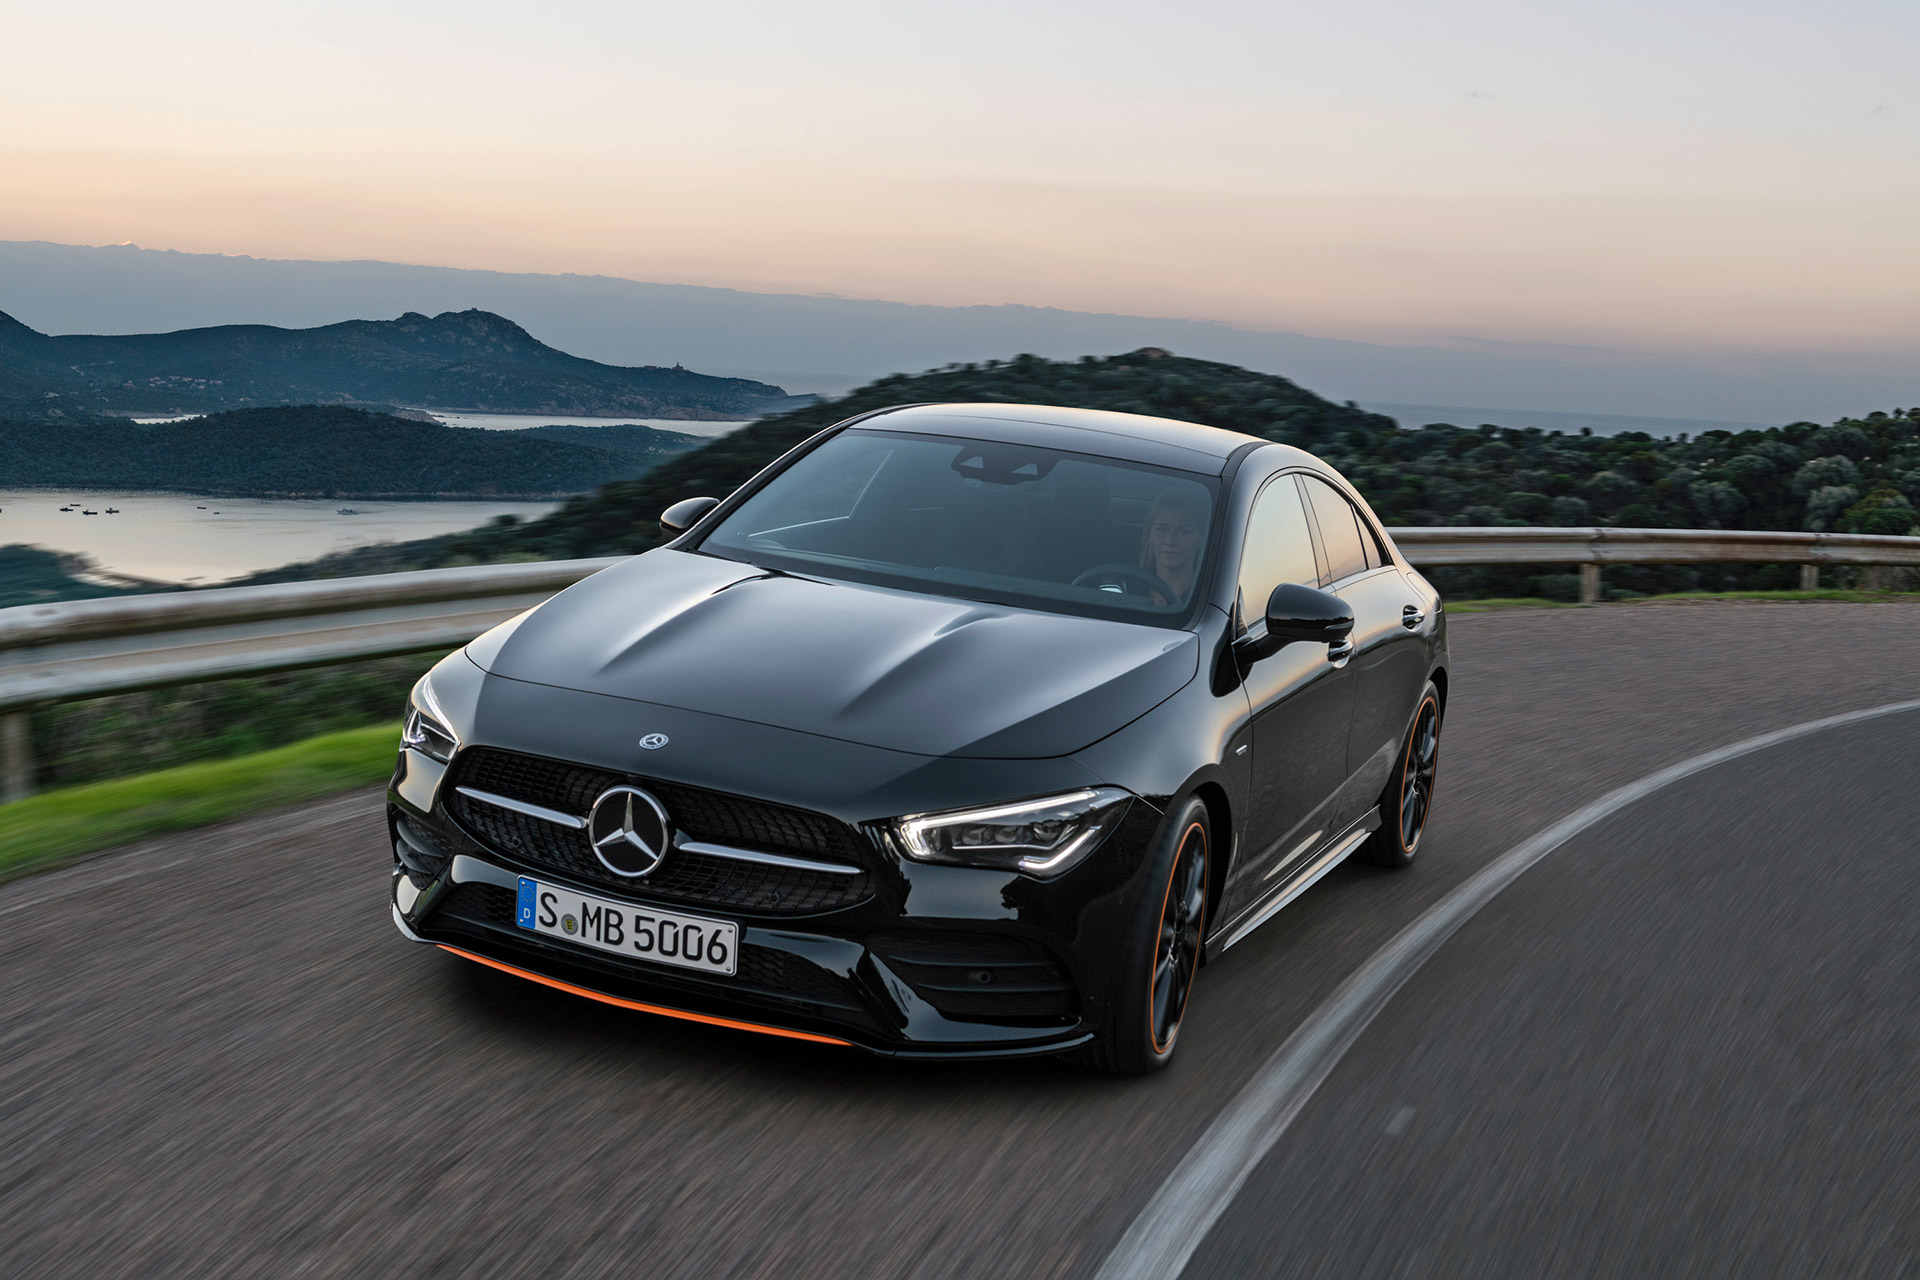 Mercedesd-CLA-Front